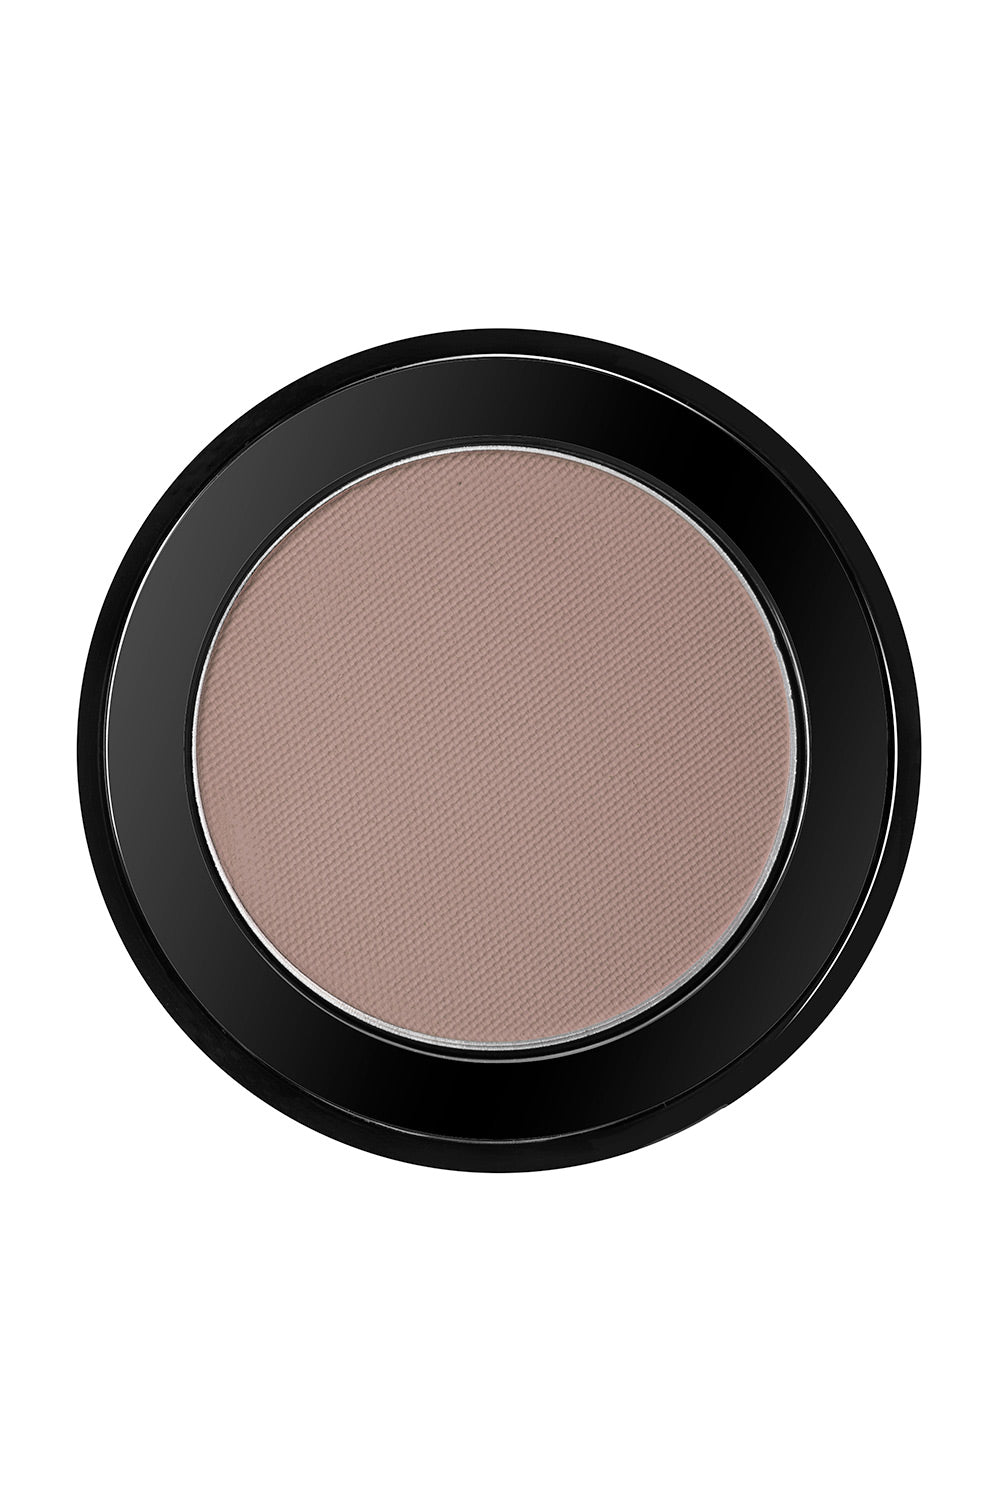 Type 2 Mineral Eyeshadow - Dusk